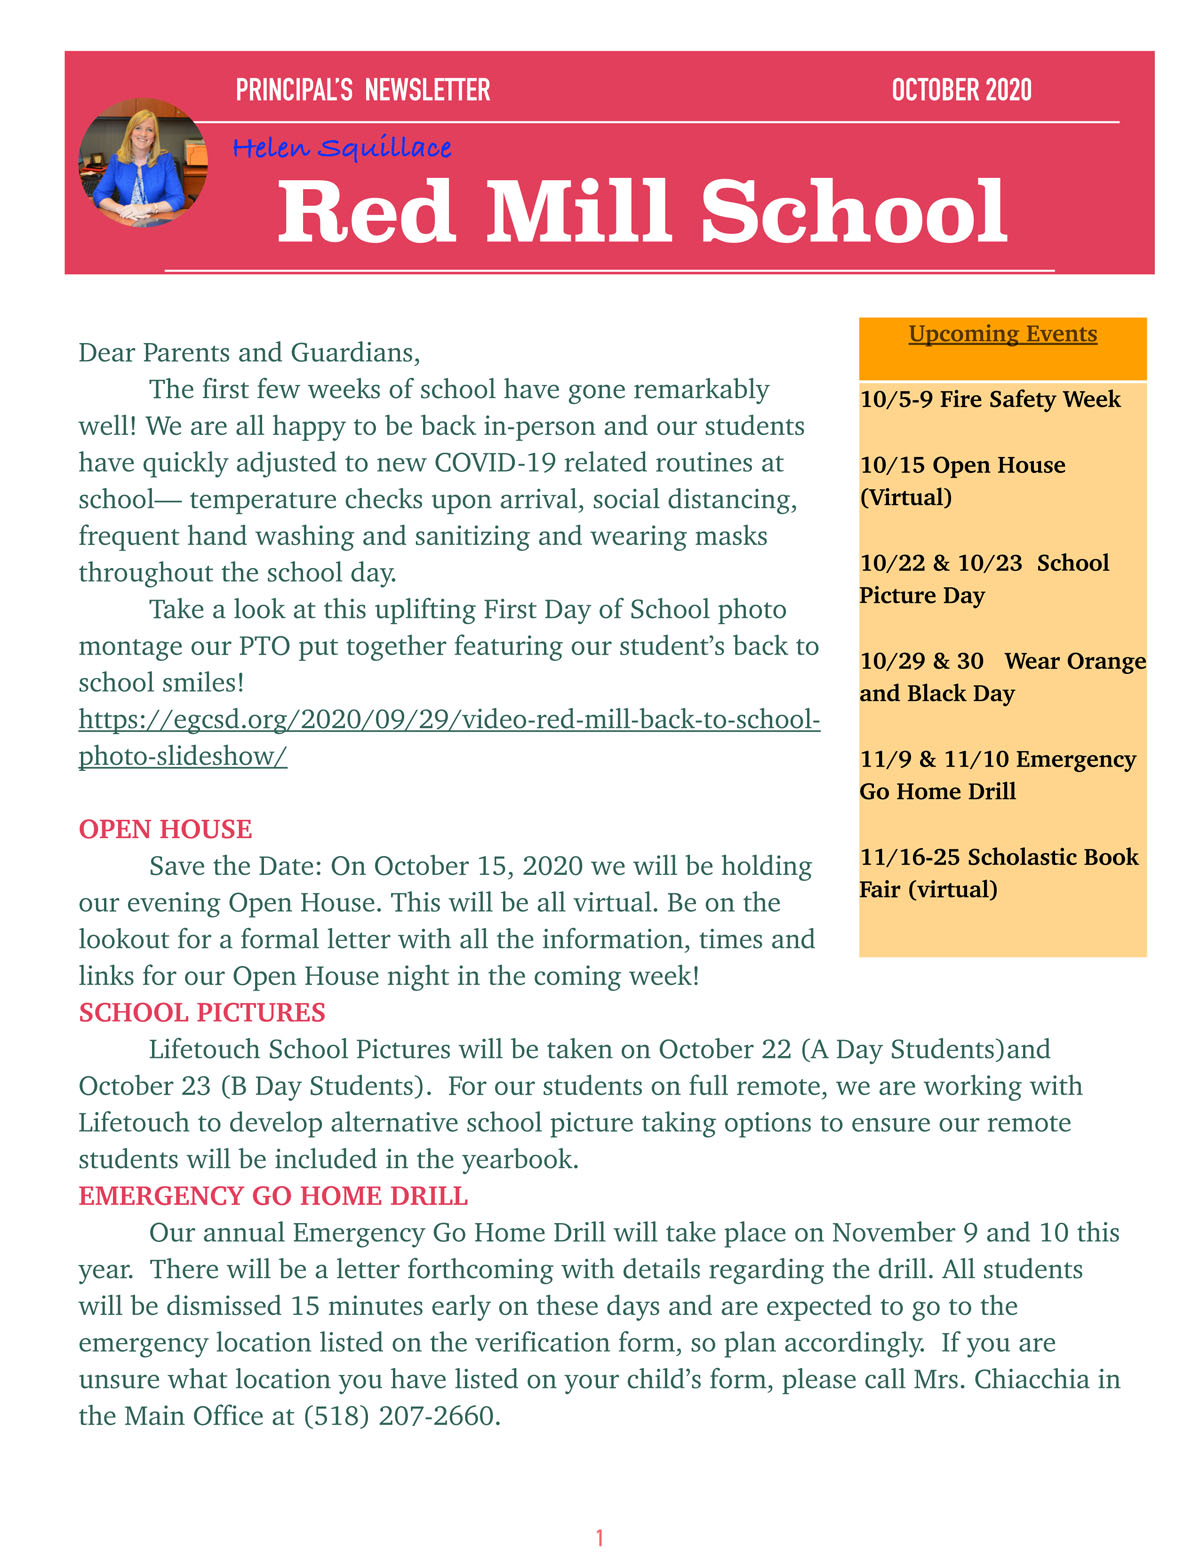 Red Mill Newsletter - October 2020